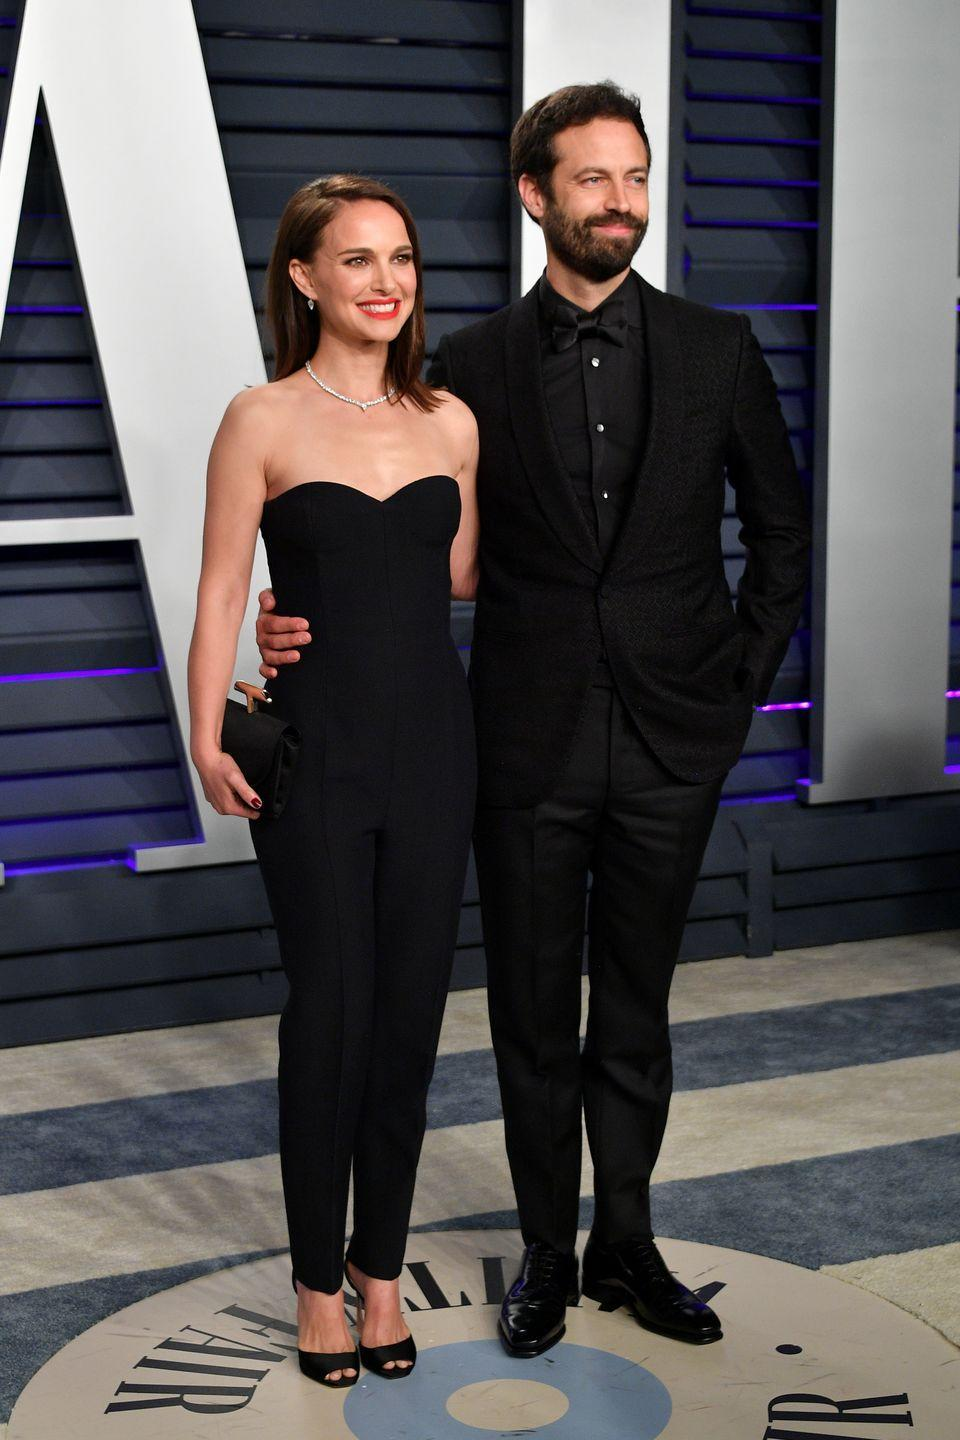 """<p>Natalie Portman may have been dreaming of Mila Kunis in Black Swan, but she was <a href=""""https://www.usmagazine.com/celebrity-news/news/natalie-portman-recalls-meeting-husband-benjamin-millepied-on-black-swan-set/"""" rel=""""nofollow noopener"""" target=""""_blank"""" data-ylk=""""slk:leaving with dancer and choreographer Benjamin Millepied"""" class=""""link rapid-noclick-resp"""">leaving with dancer and choreographer Benjamin Millepied</a>. By the time she accepted the Oscar for the role in 2011, she was pregnant with her and Benjamin's first child. 'So many people helped me prepare for this role,' <a href=""""https://youtu.be/BYvUm1YJBSs"""" rel=""""nofollow noopener"""" target=""""_blank"""" data-ylk=""""slk:Portman said"""" class=""""link rapid-noclick-resp"""">Portman said</a> in her acceptance speech. '... and my beautiful love, Benjamin Millepied, who choreographed the film and has now given me my most important role of my life.'</p>"""